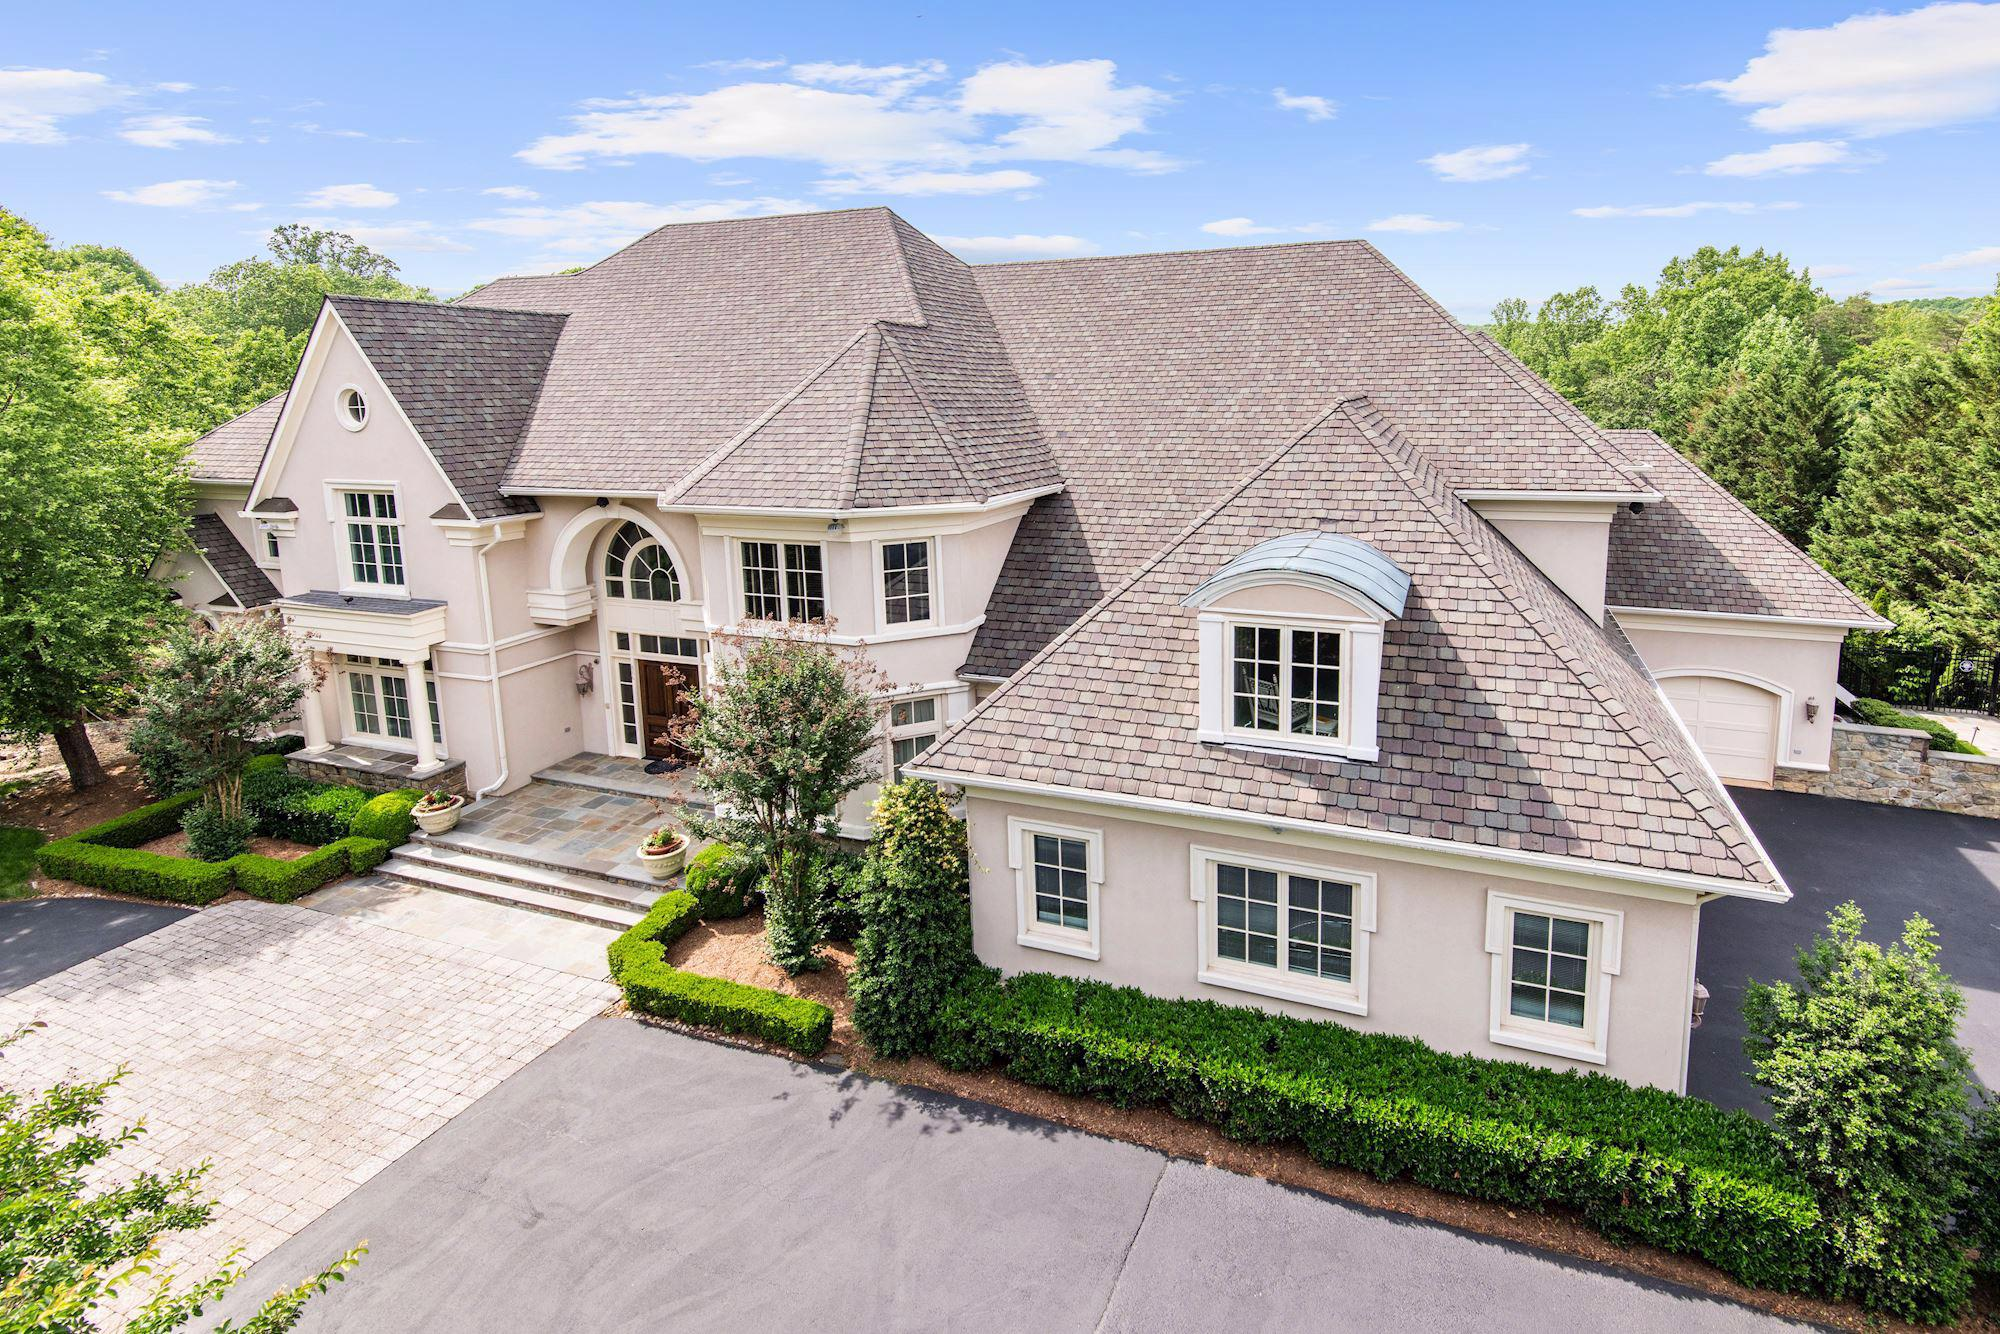 Single Family Home for Sale at 886 Chinquapin Road 886 Chinquapin Road McLean, Virginia 22102 United States